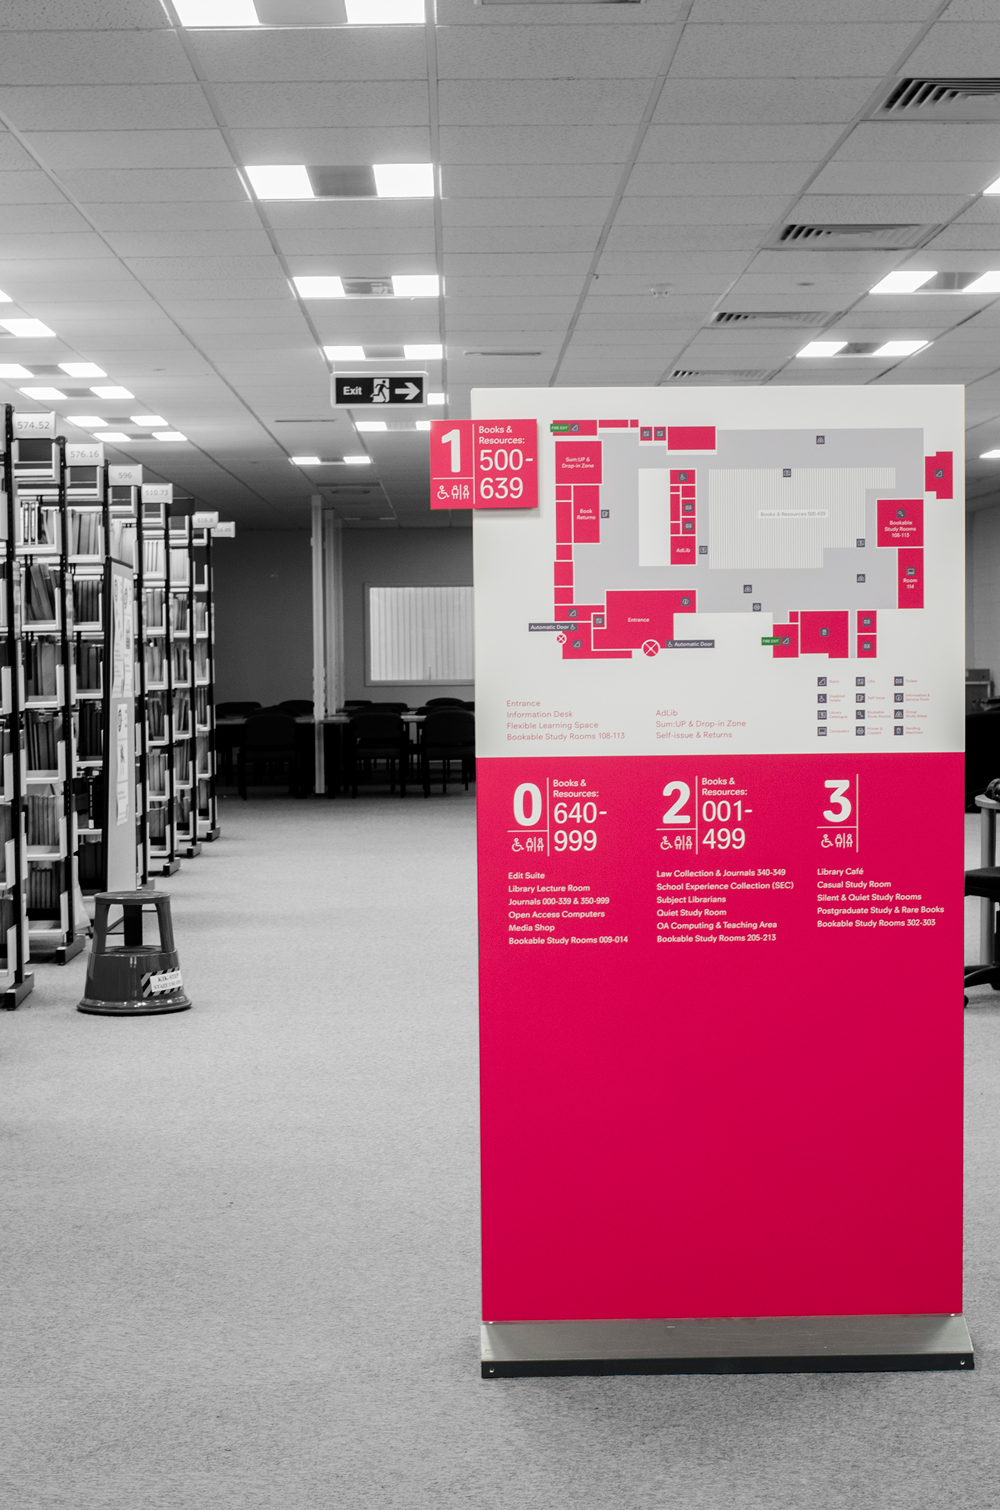 library wayfinding infographic Signage University map user experience floor plan information environmental graphic disability